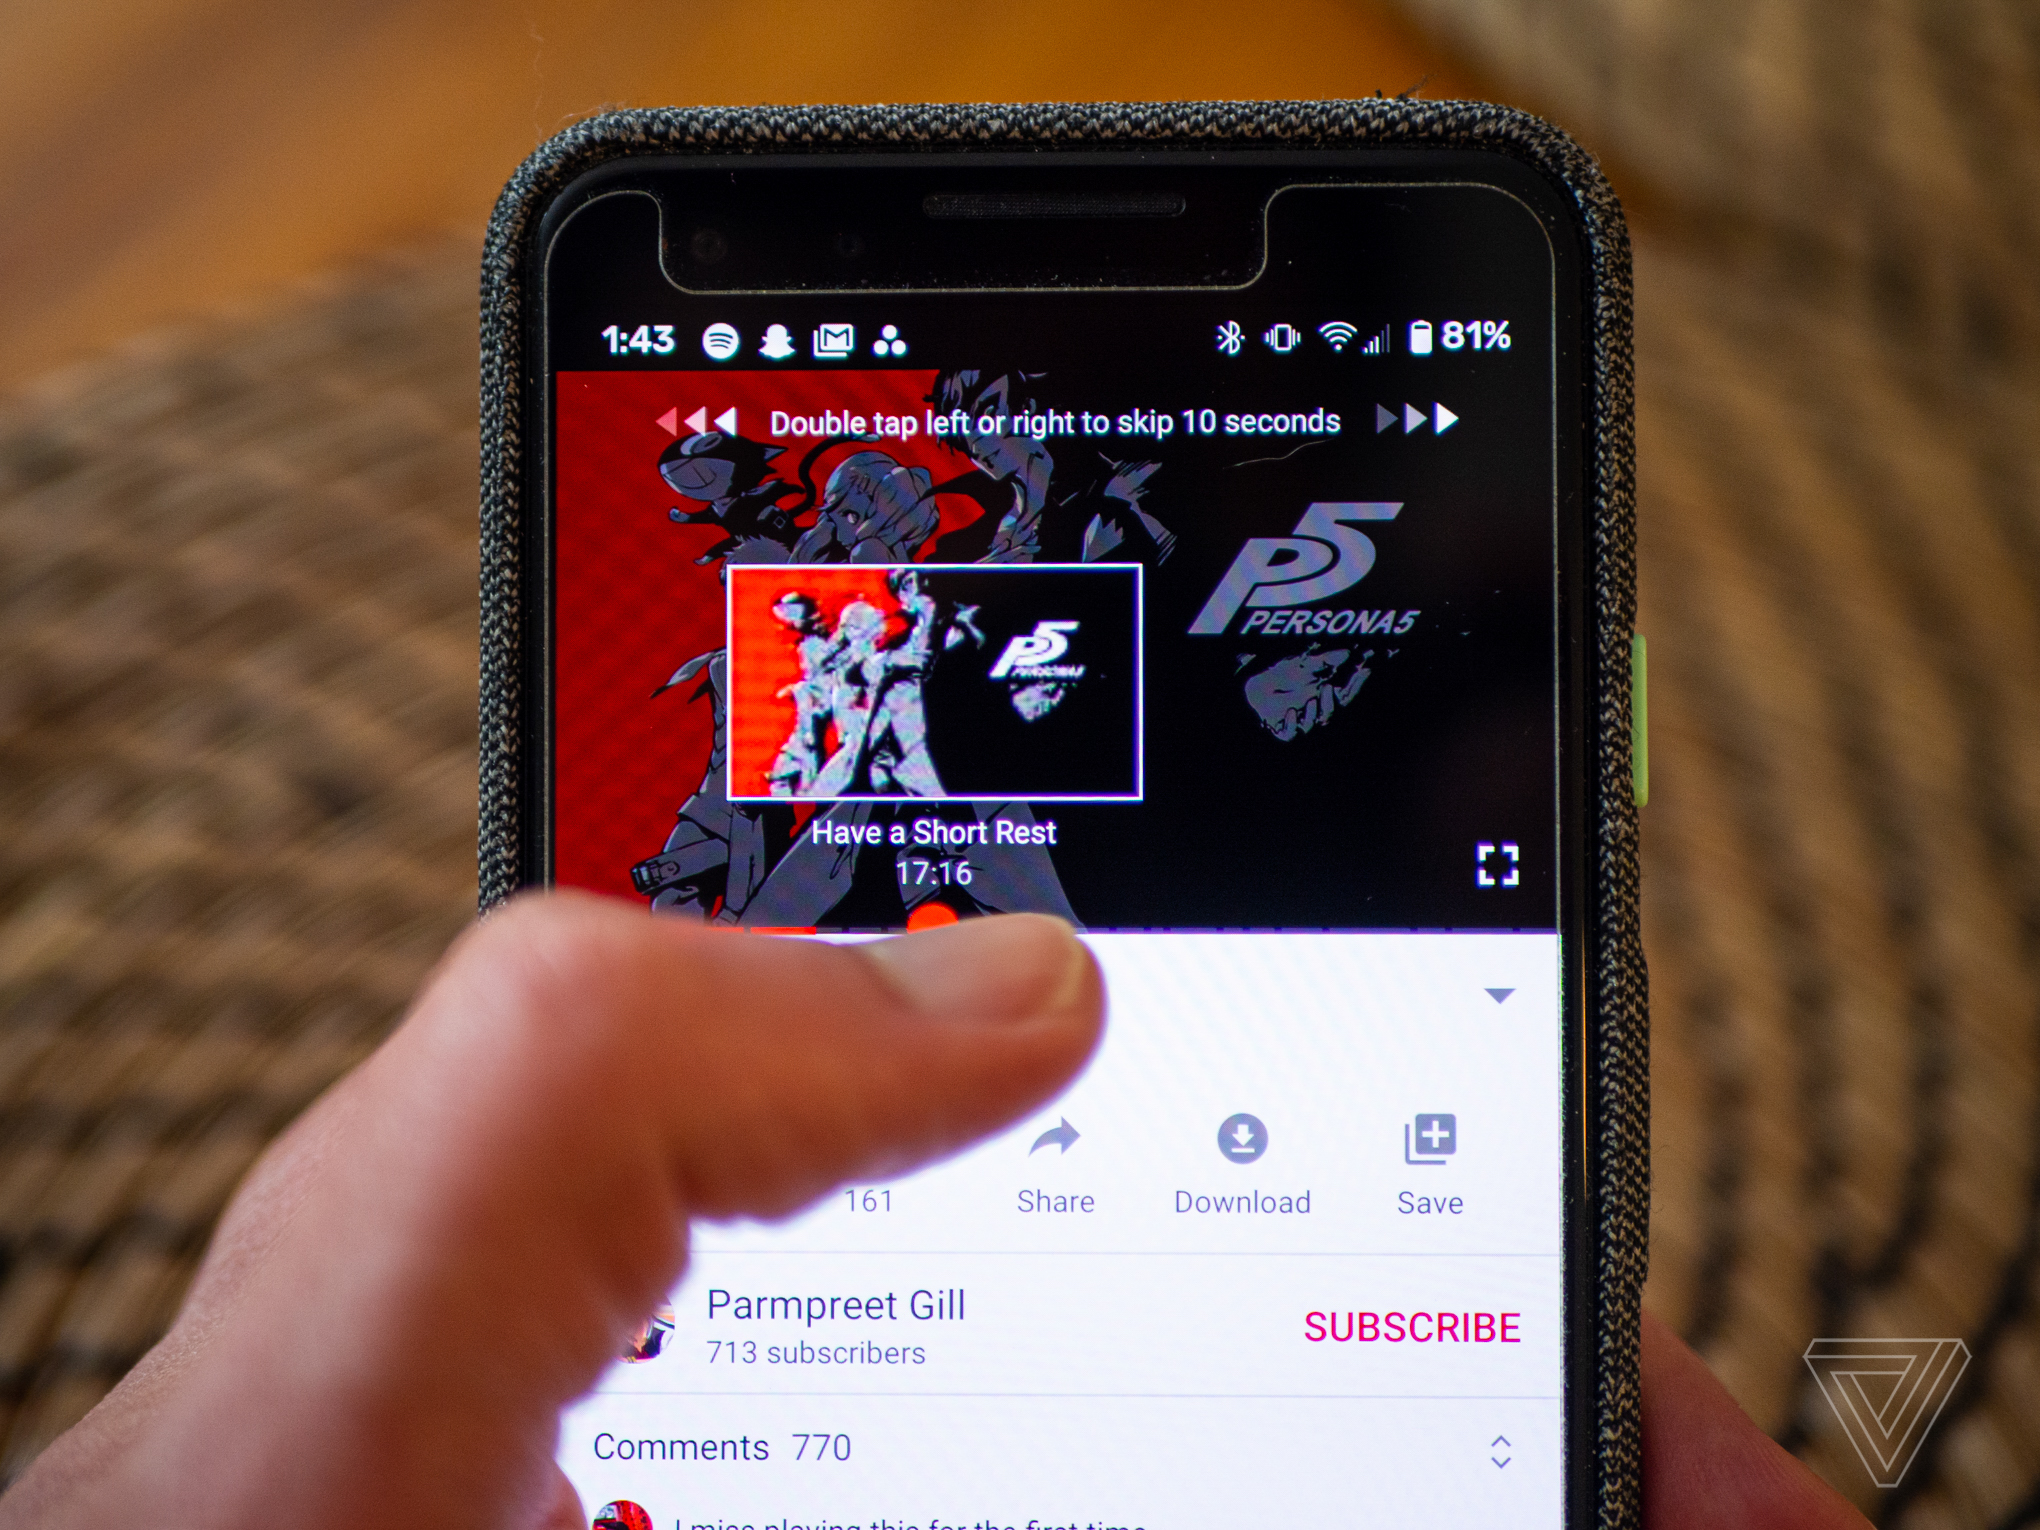 YouTube on mobile phone